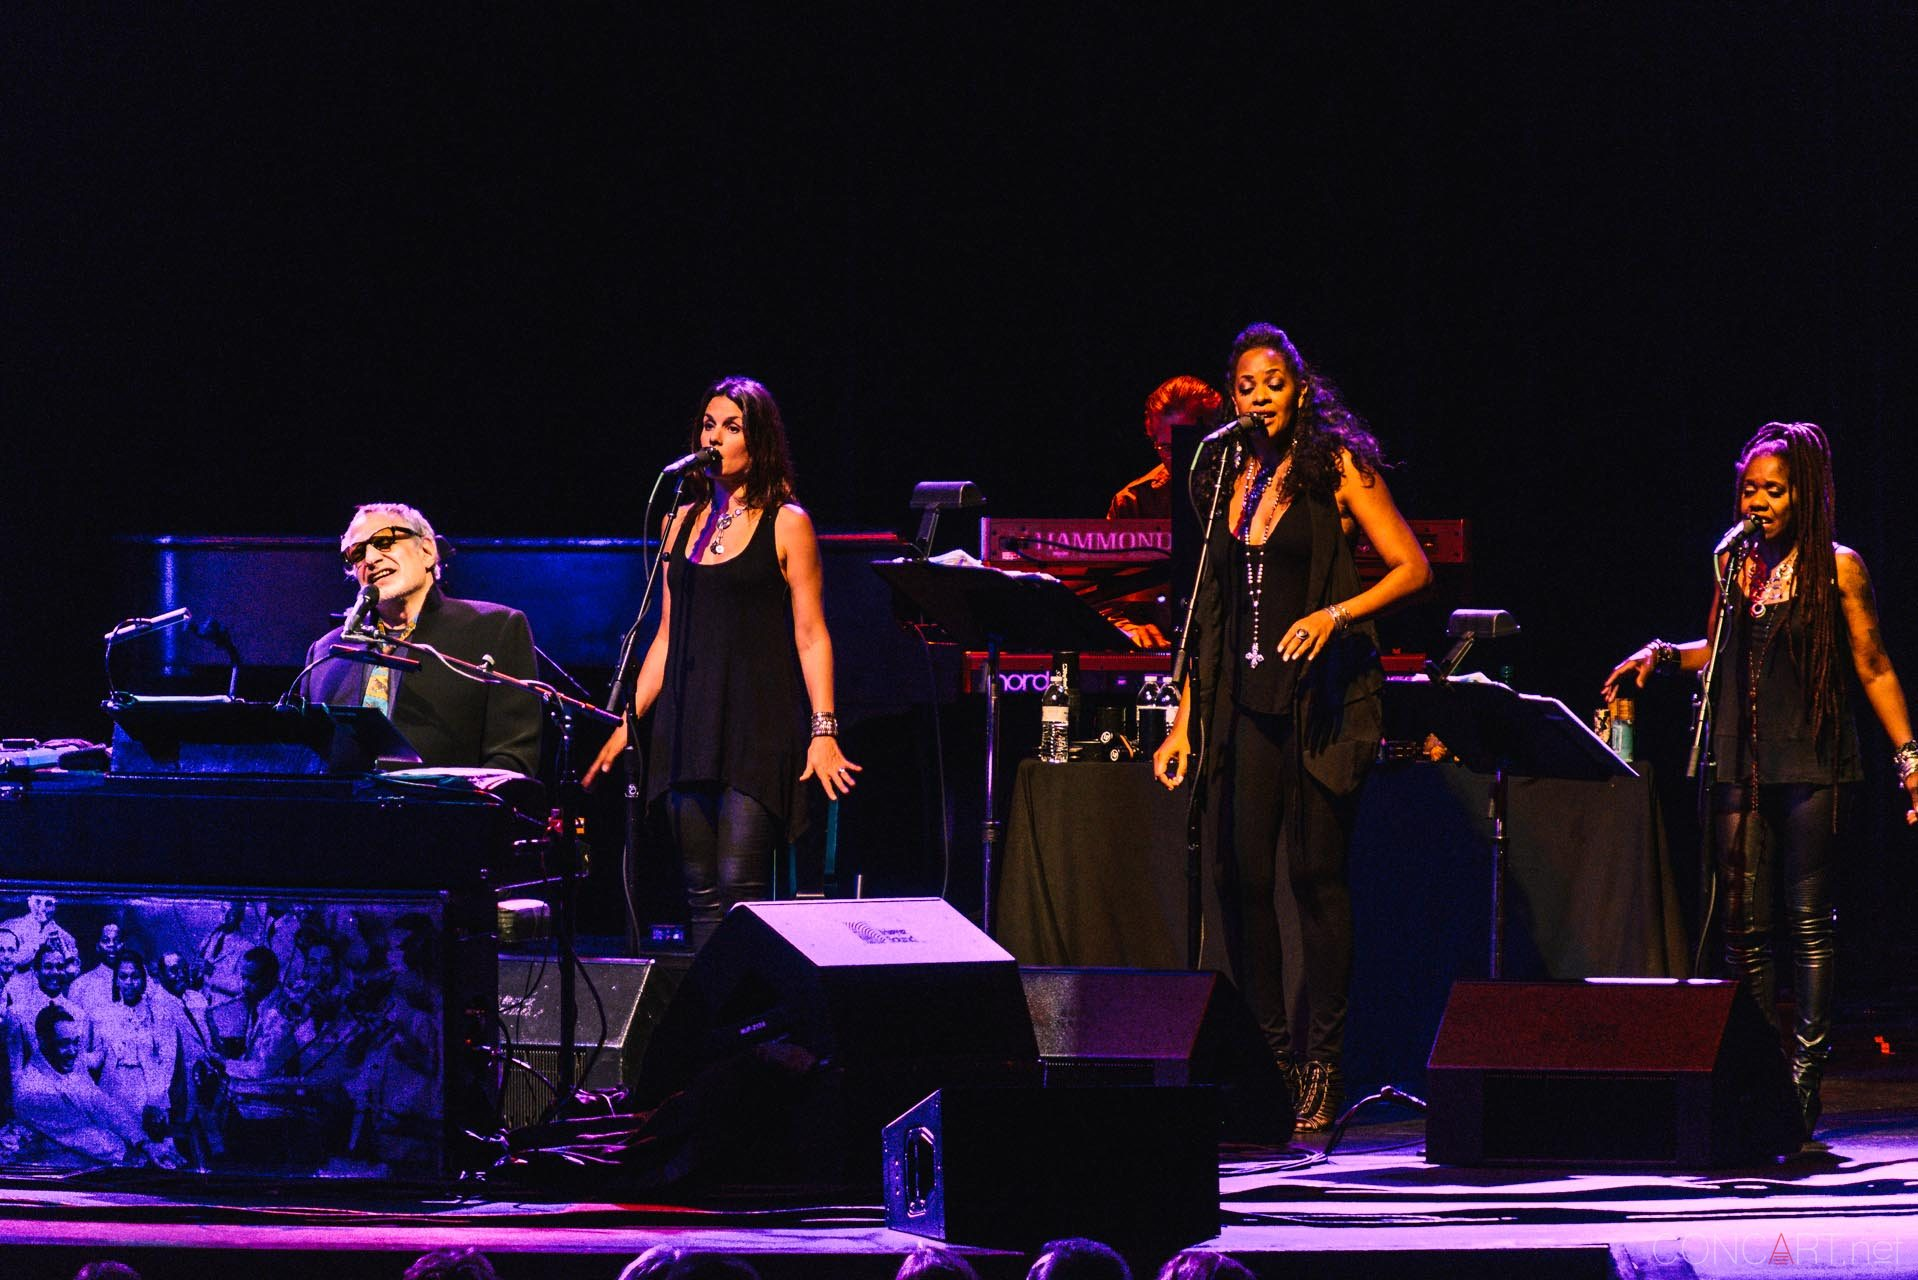 steely_dan_live_old_national_murat_theatre_indianapolis_2013-03